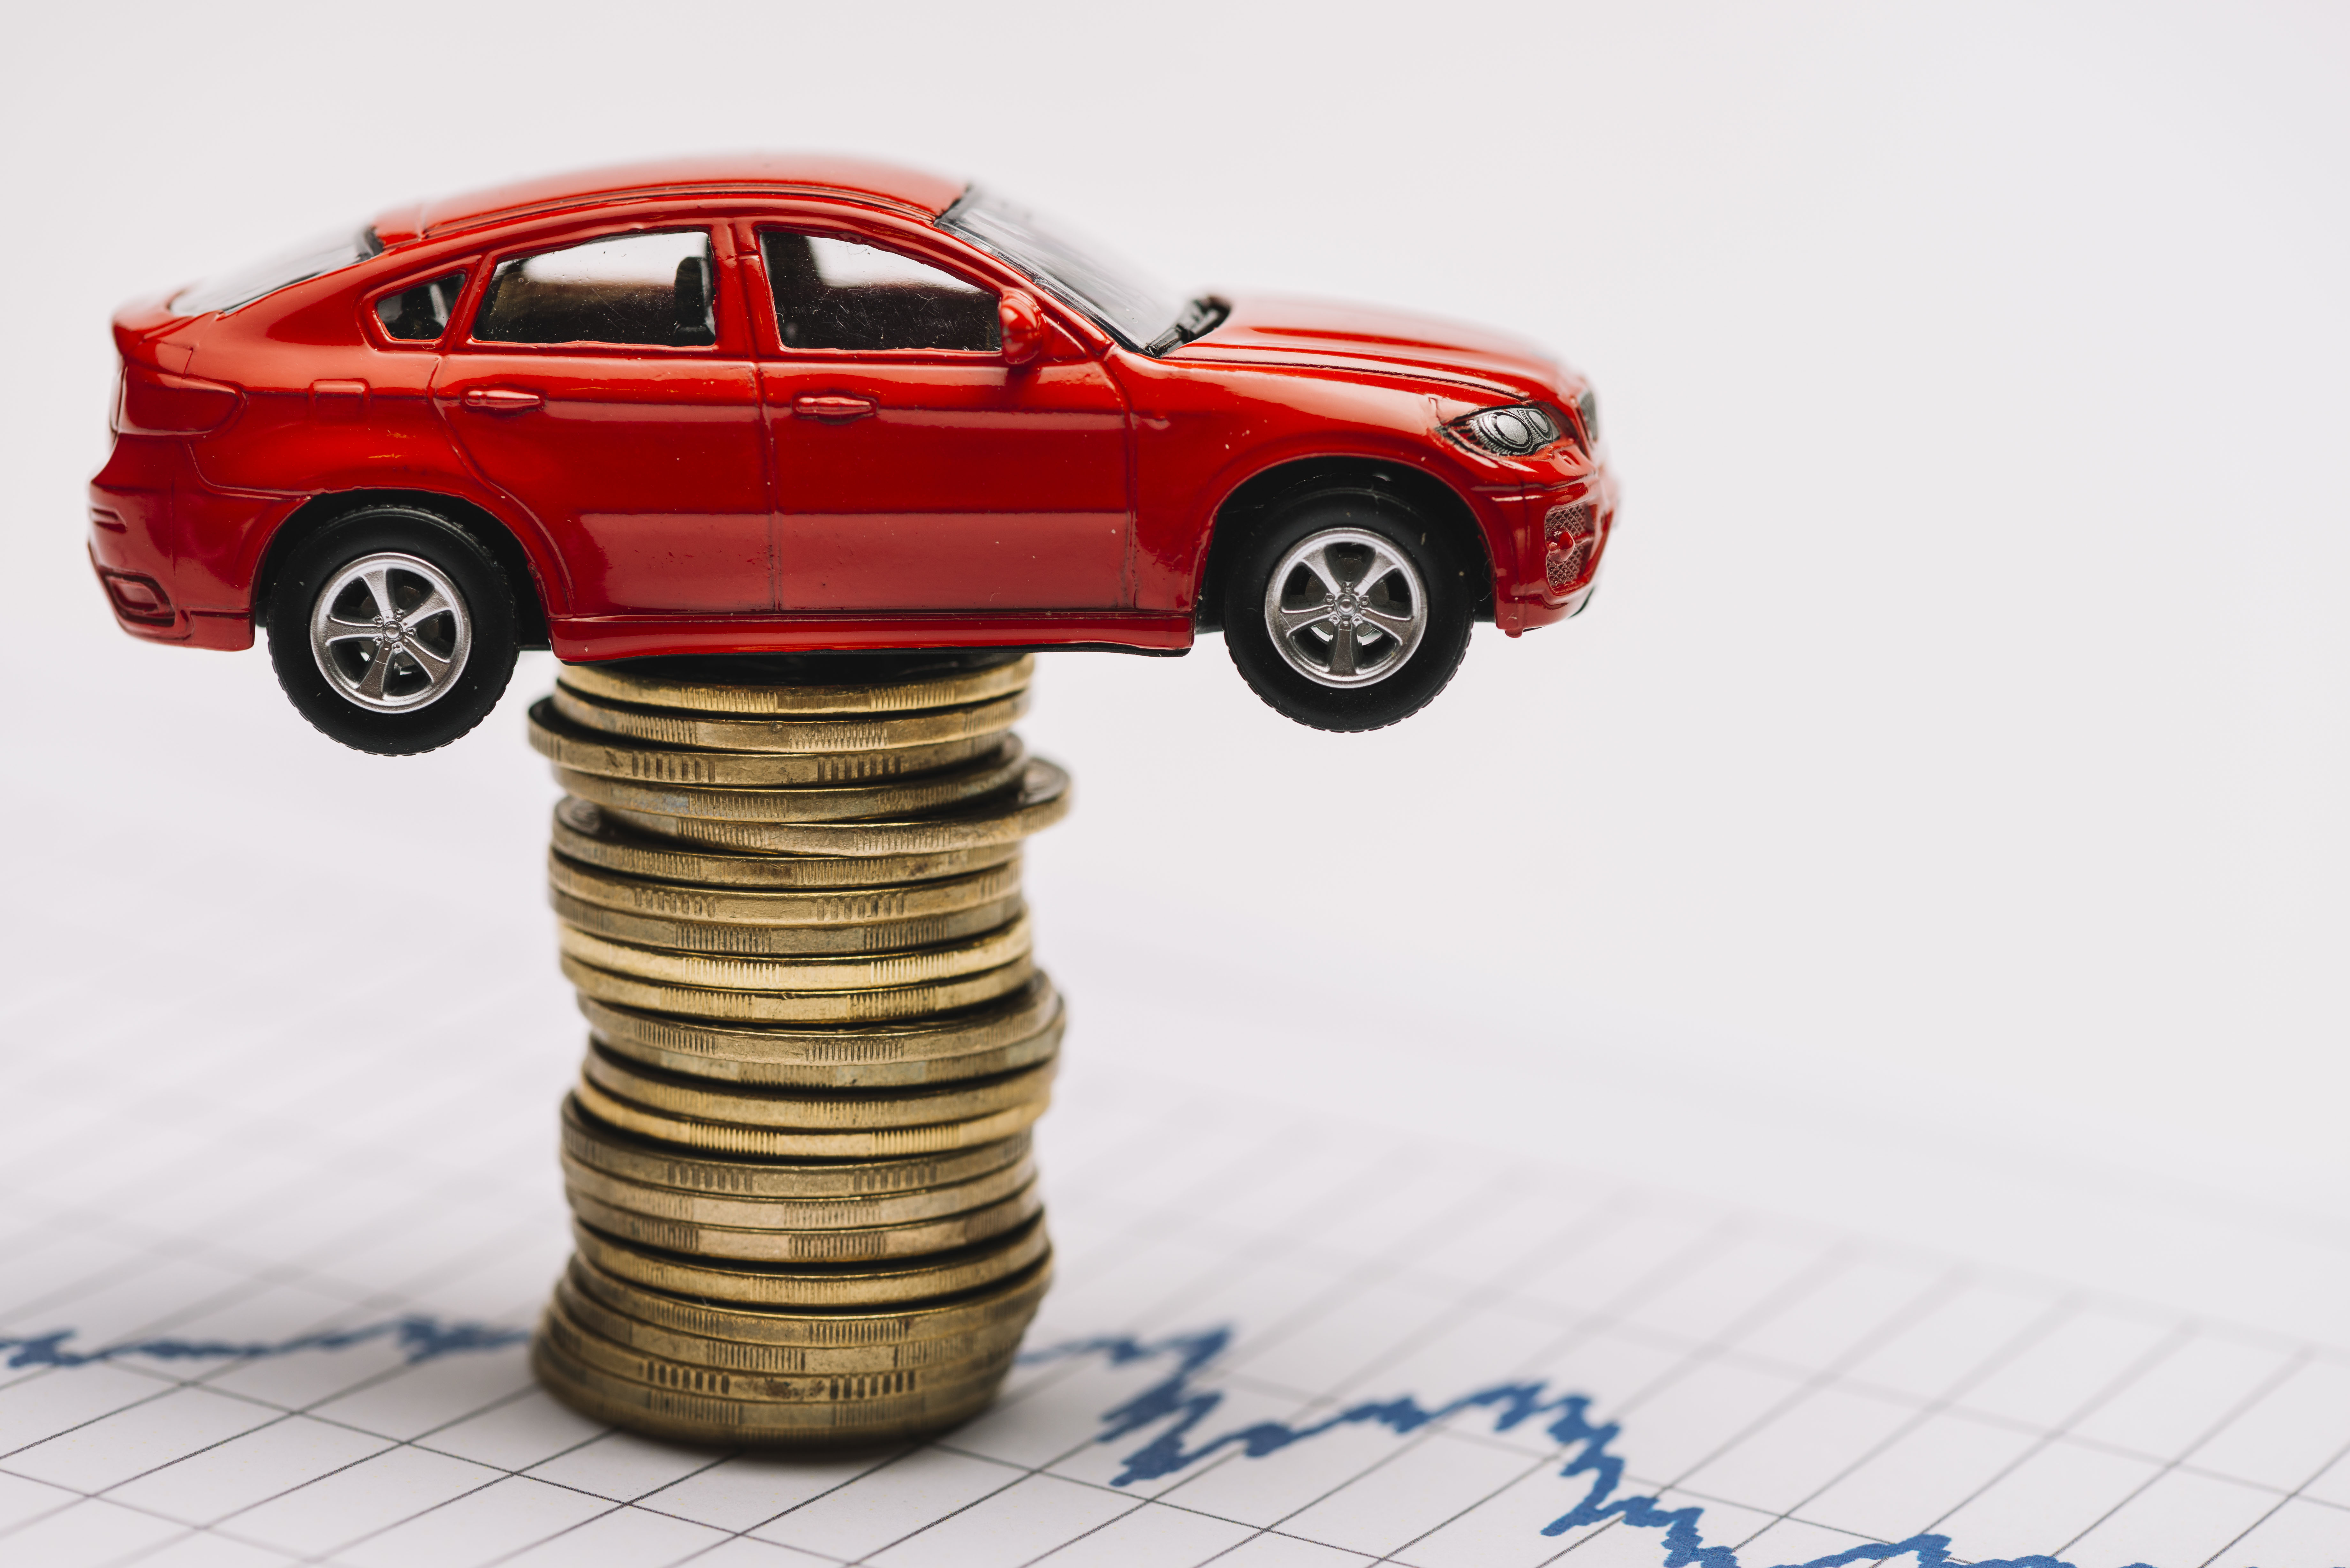 Different ways to spend your tax refund on your car